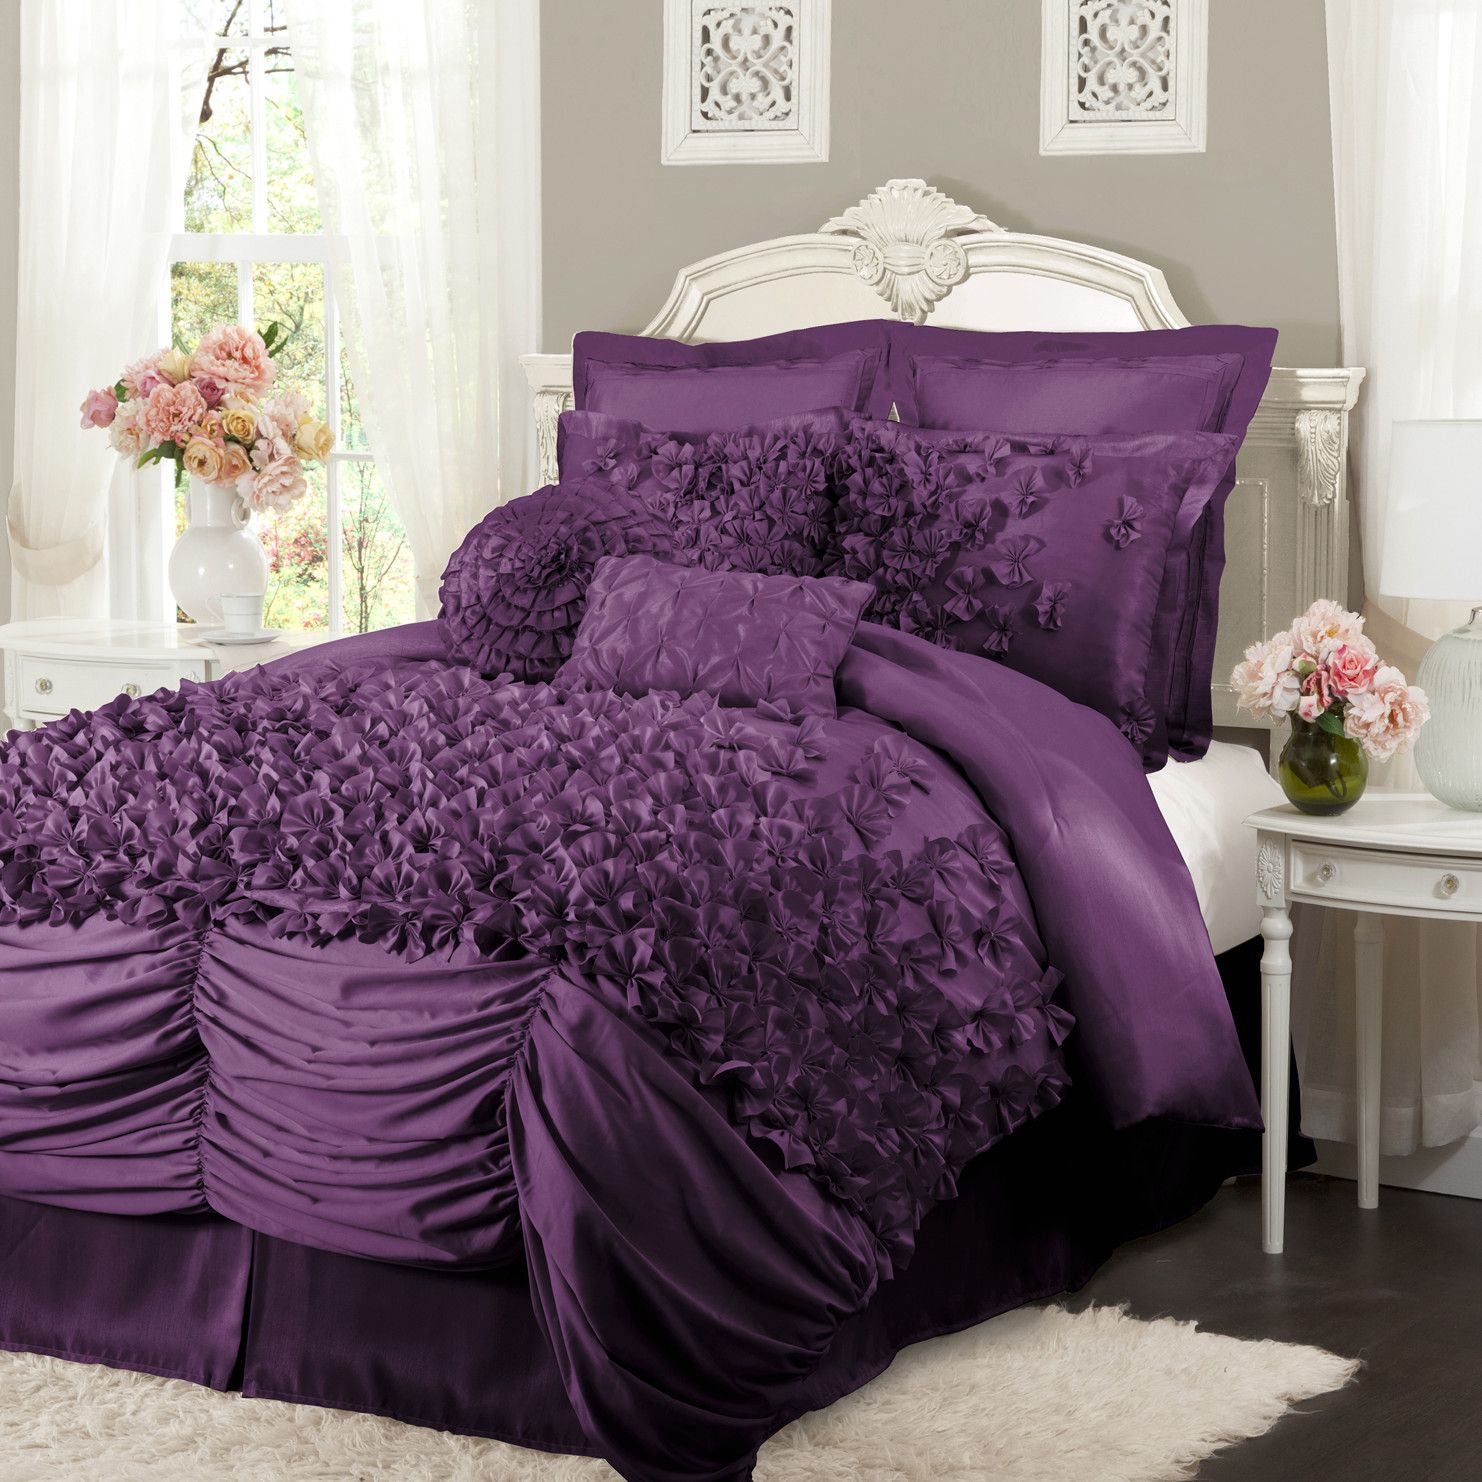 mauve twin pillows bedroom quilt full gold silver cheap bedding comforter teal bed purple bedspreads set comforters plum sets and for queen purpletwin size red of long